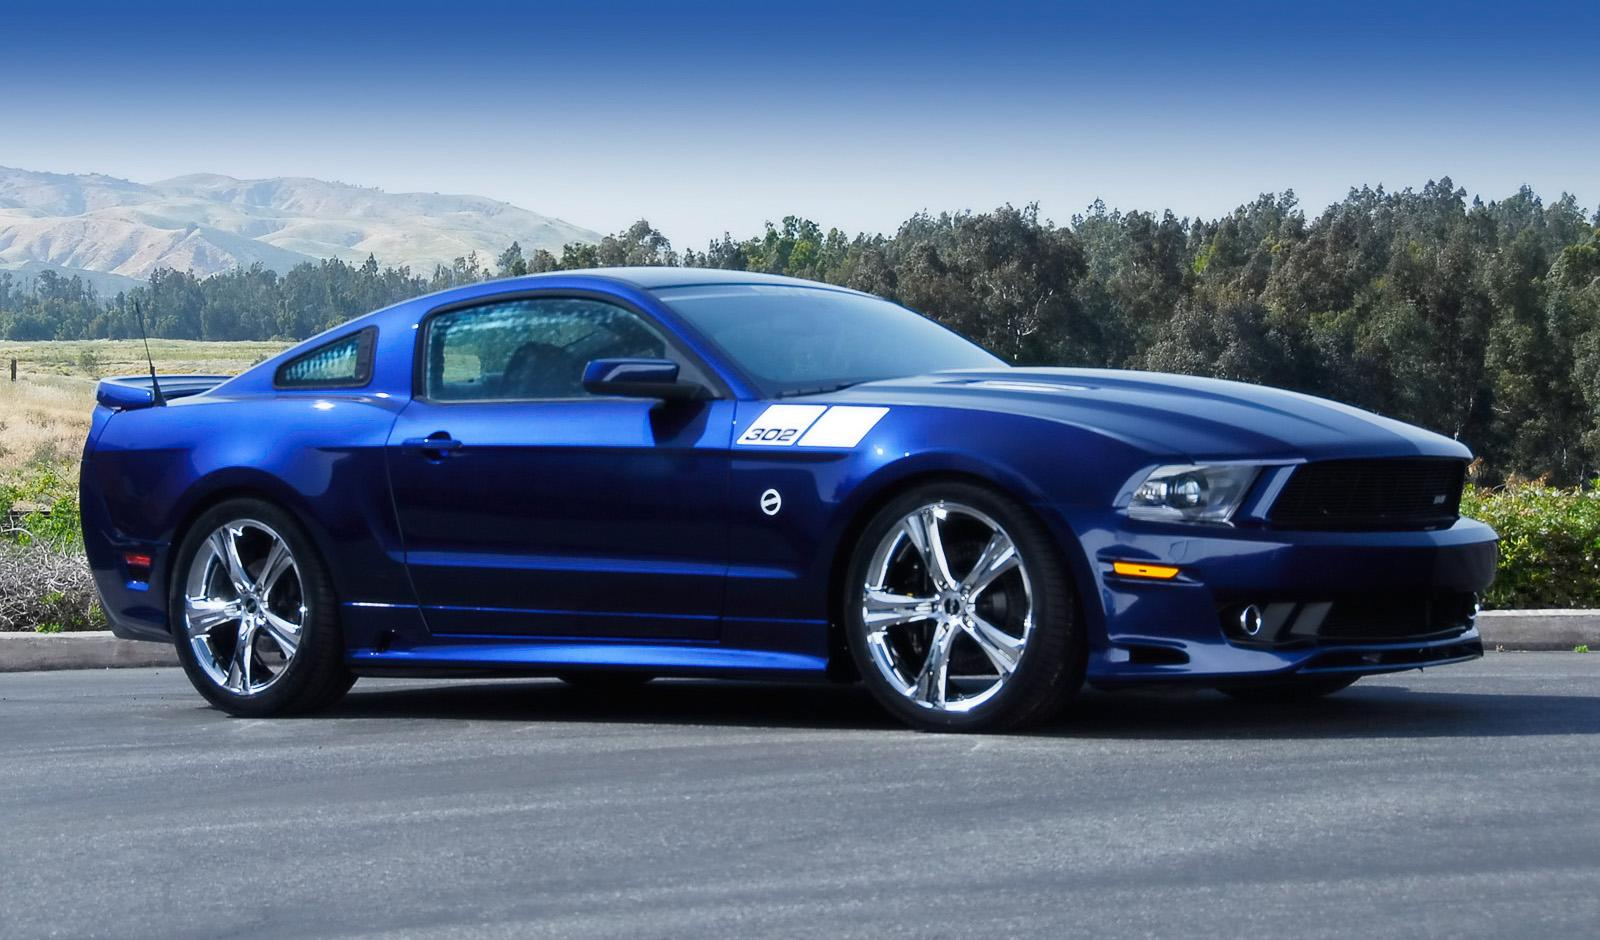 2011 sms mustang news and information conceptcarz com